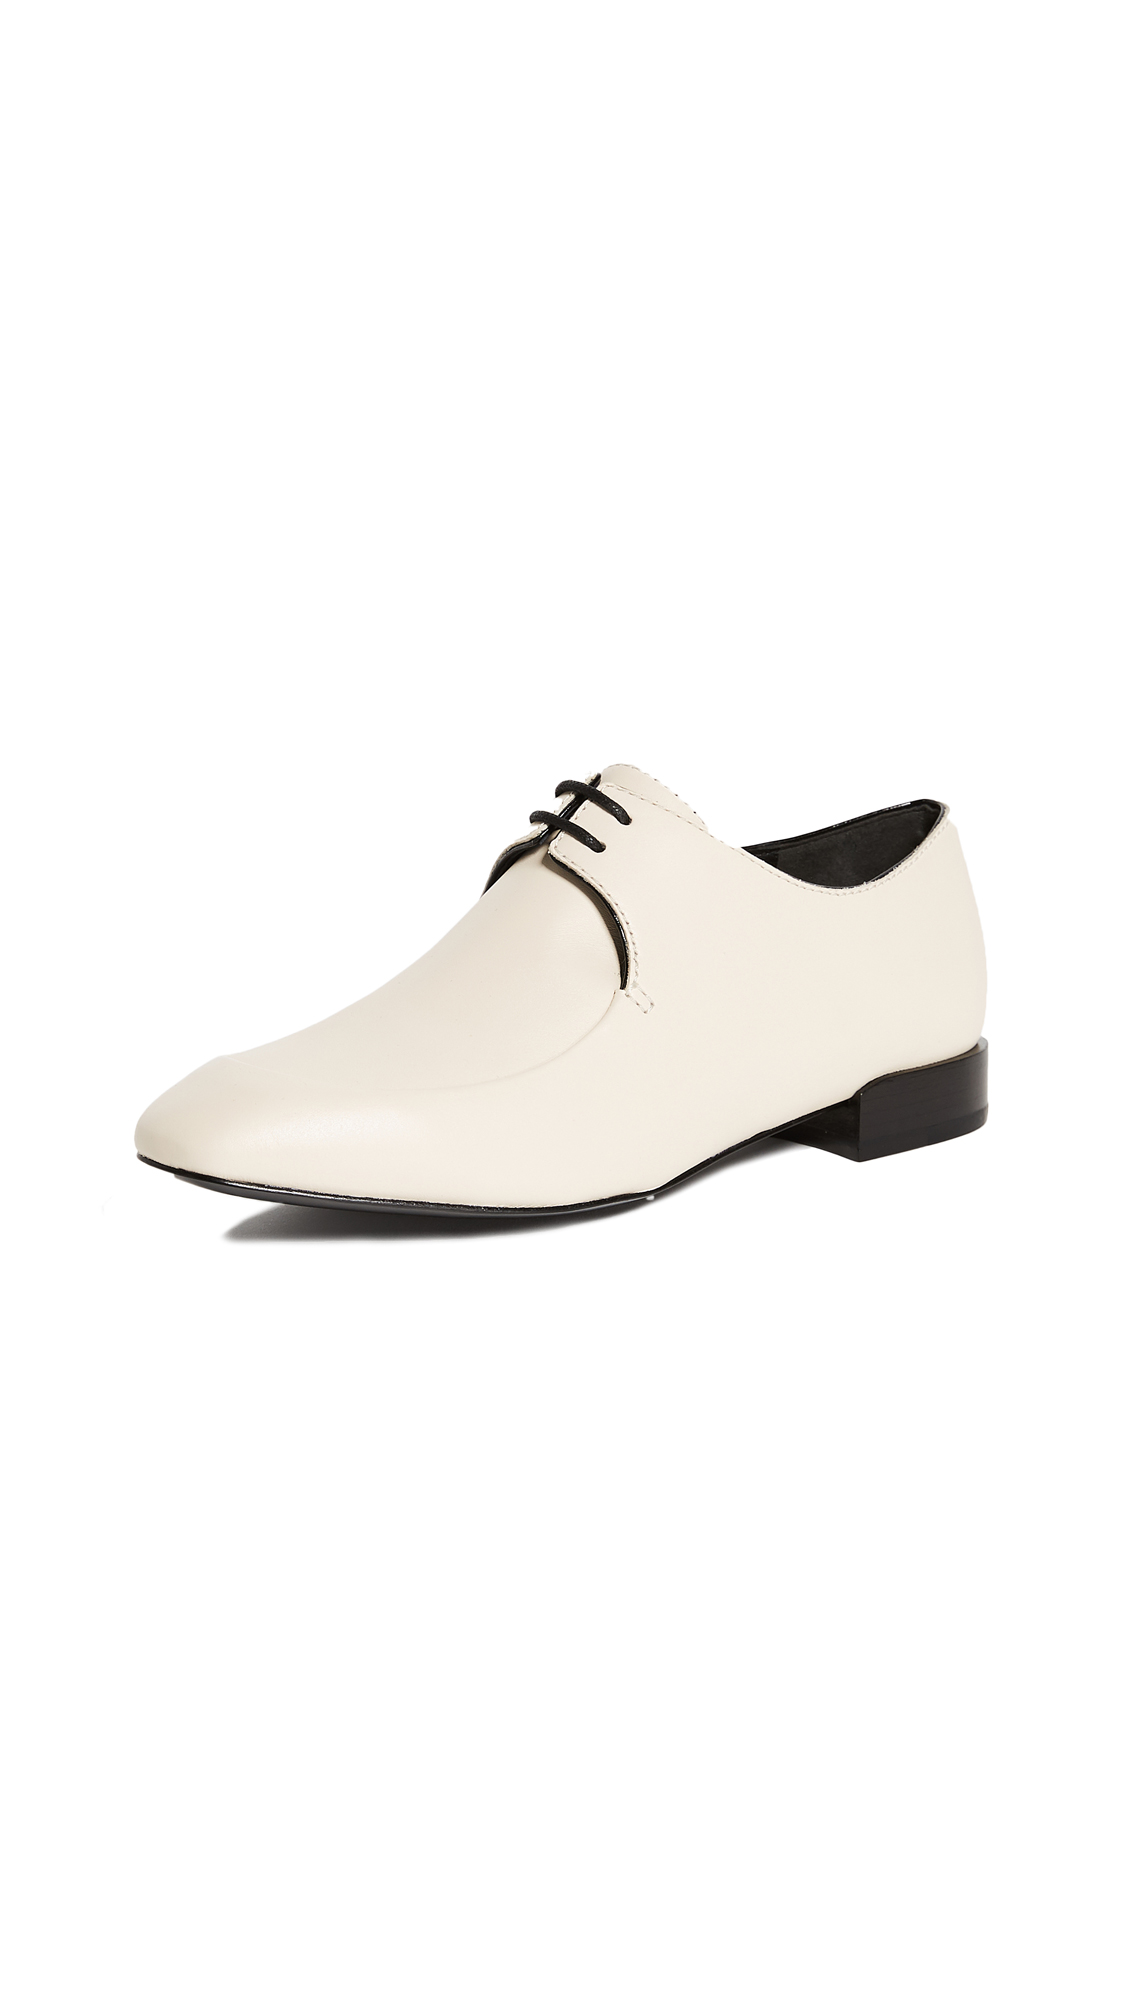 3.1 Phillip Lim Louie Oxfords - Vanilla